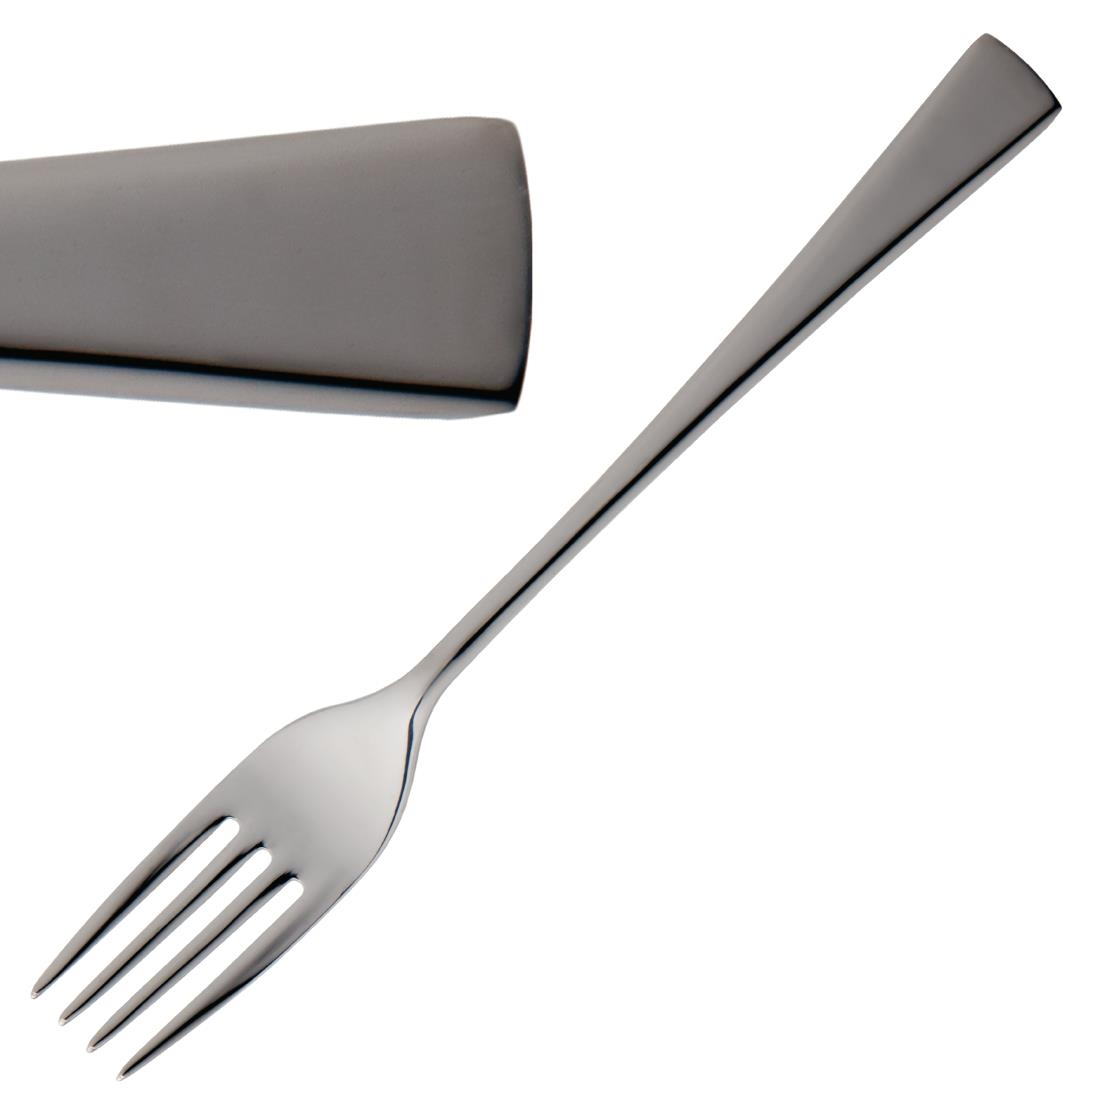 Image of Abert Cosmos Dessert Fork (Pack of 12) Pack of 12